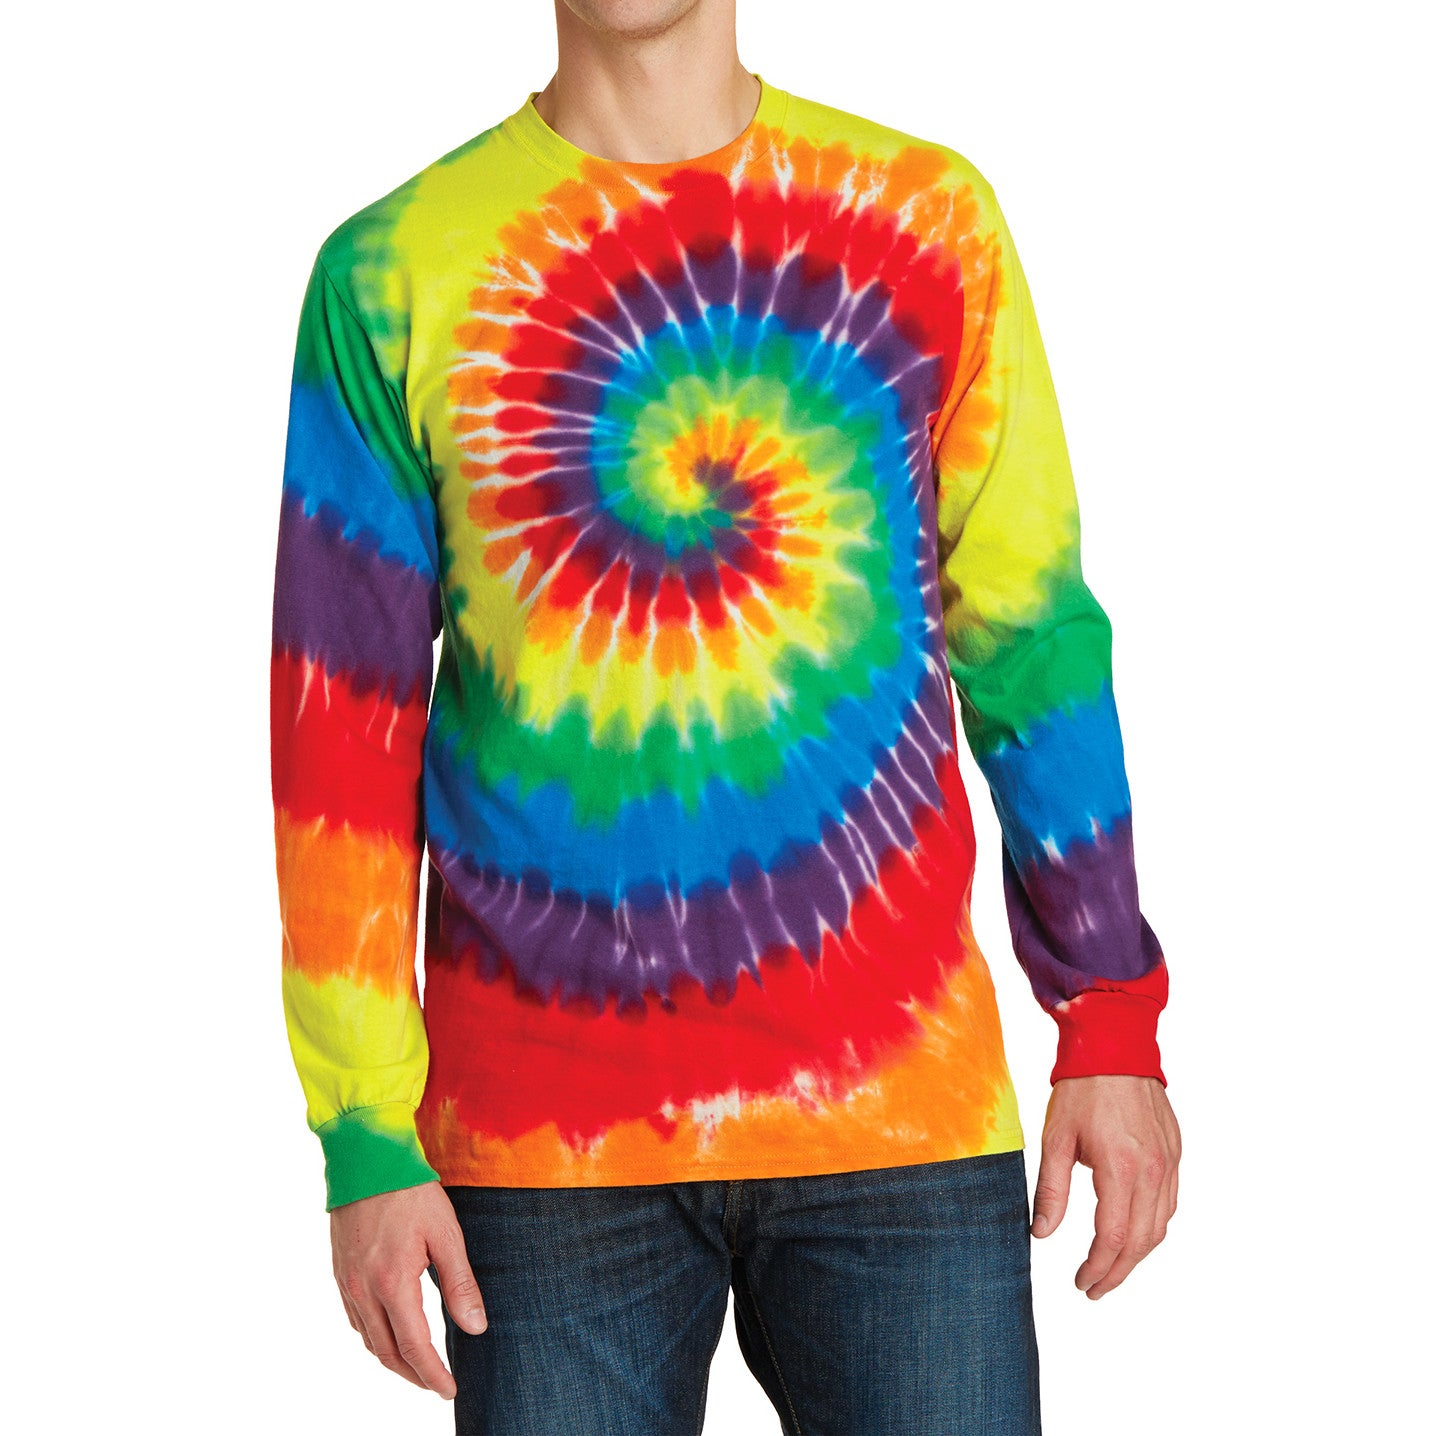 Men's Tie-Dye Long Sleeve Tee - Rainbow - Front